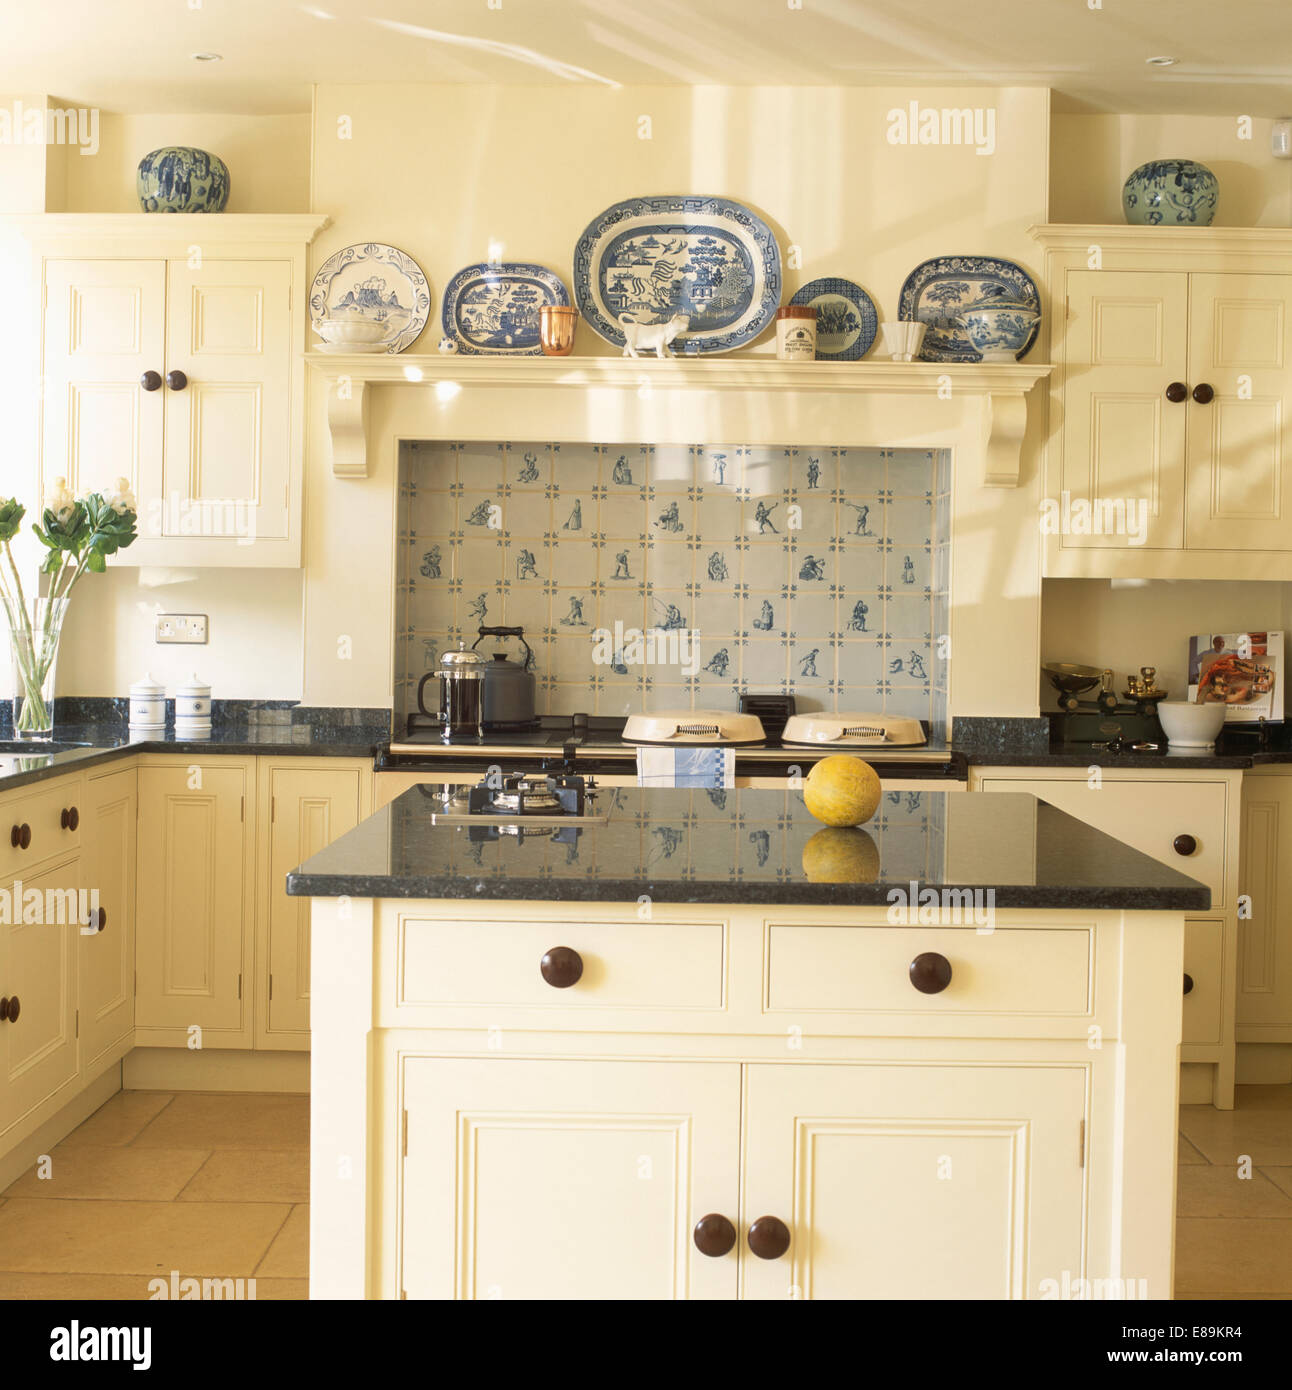 Where To Buy A Small Kitchen Island